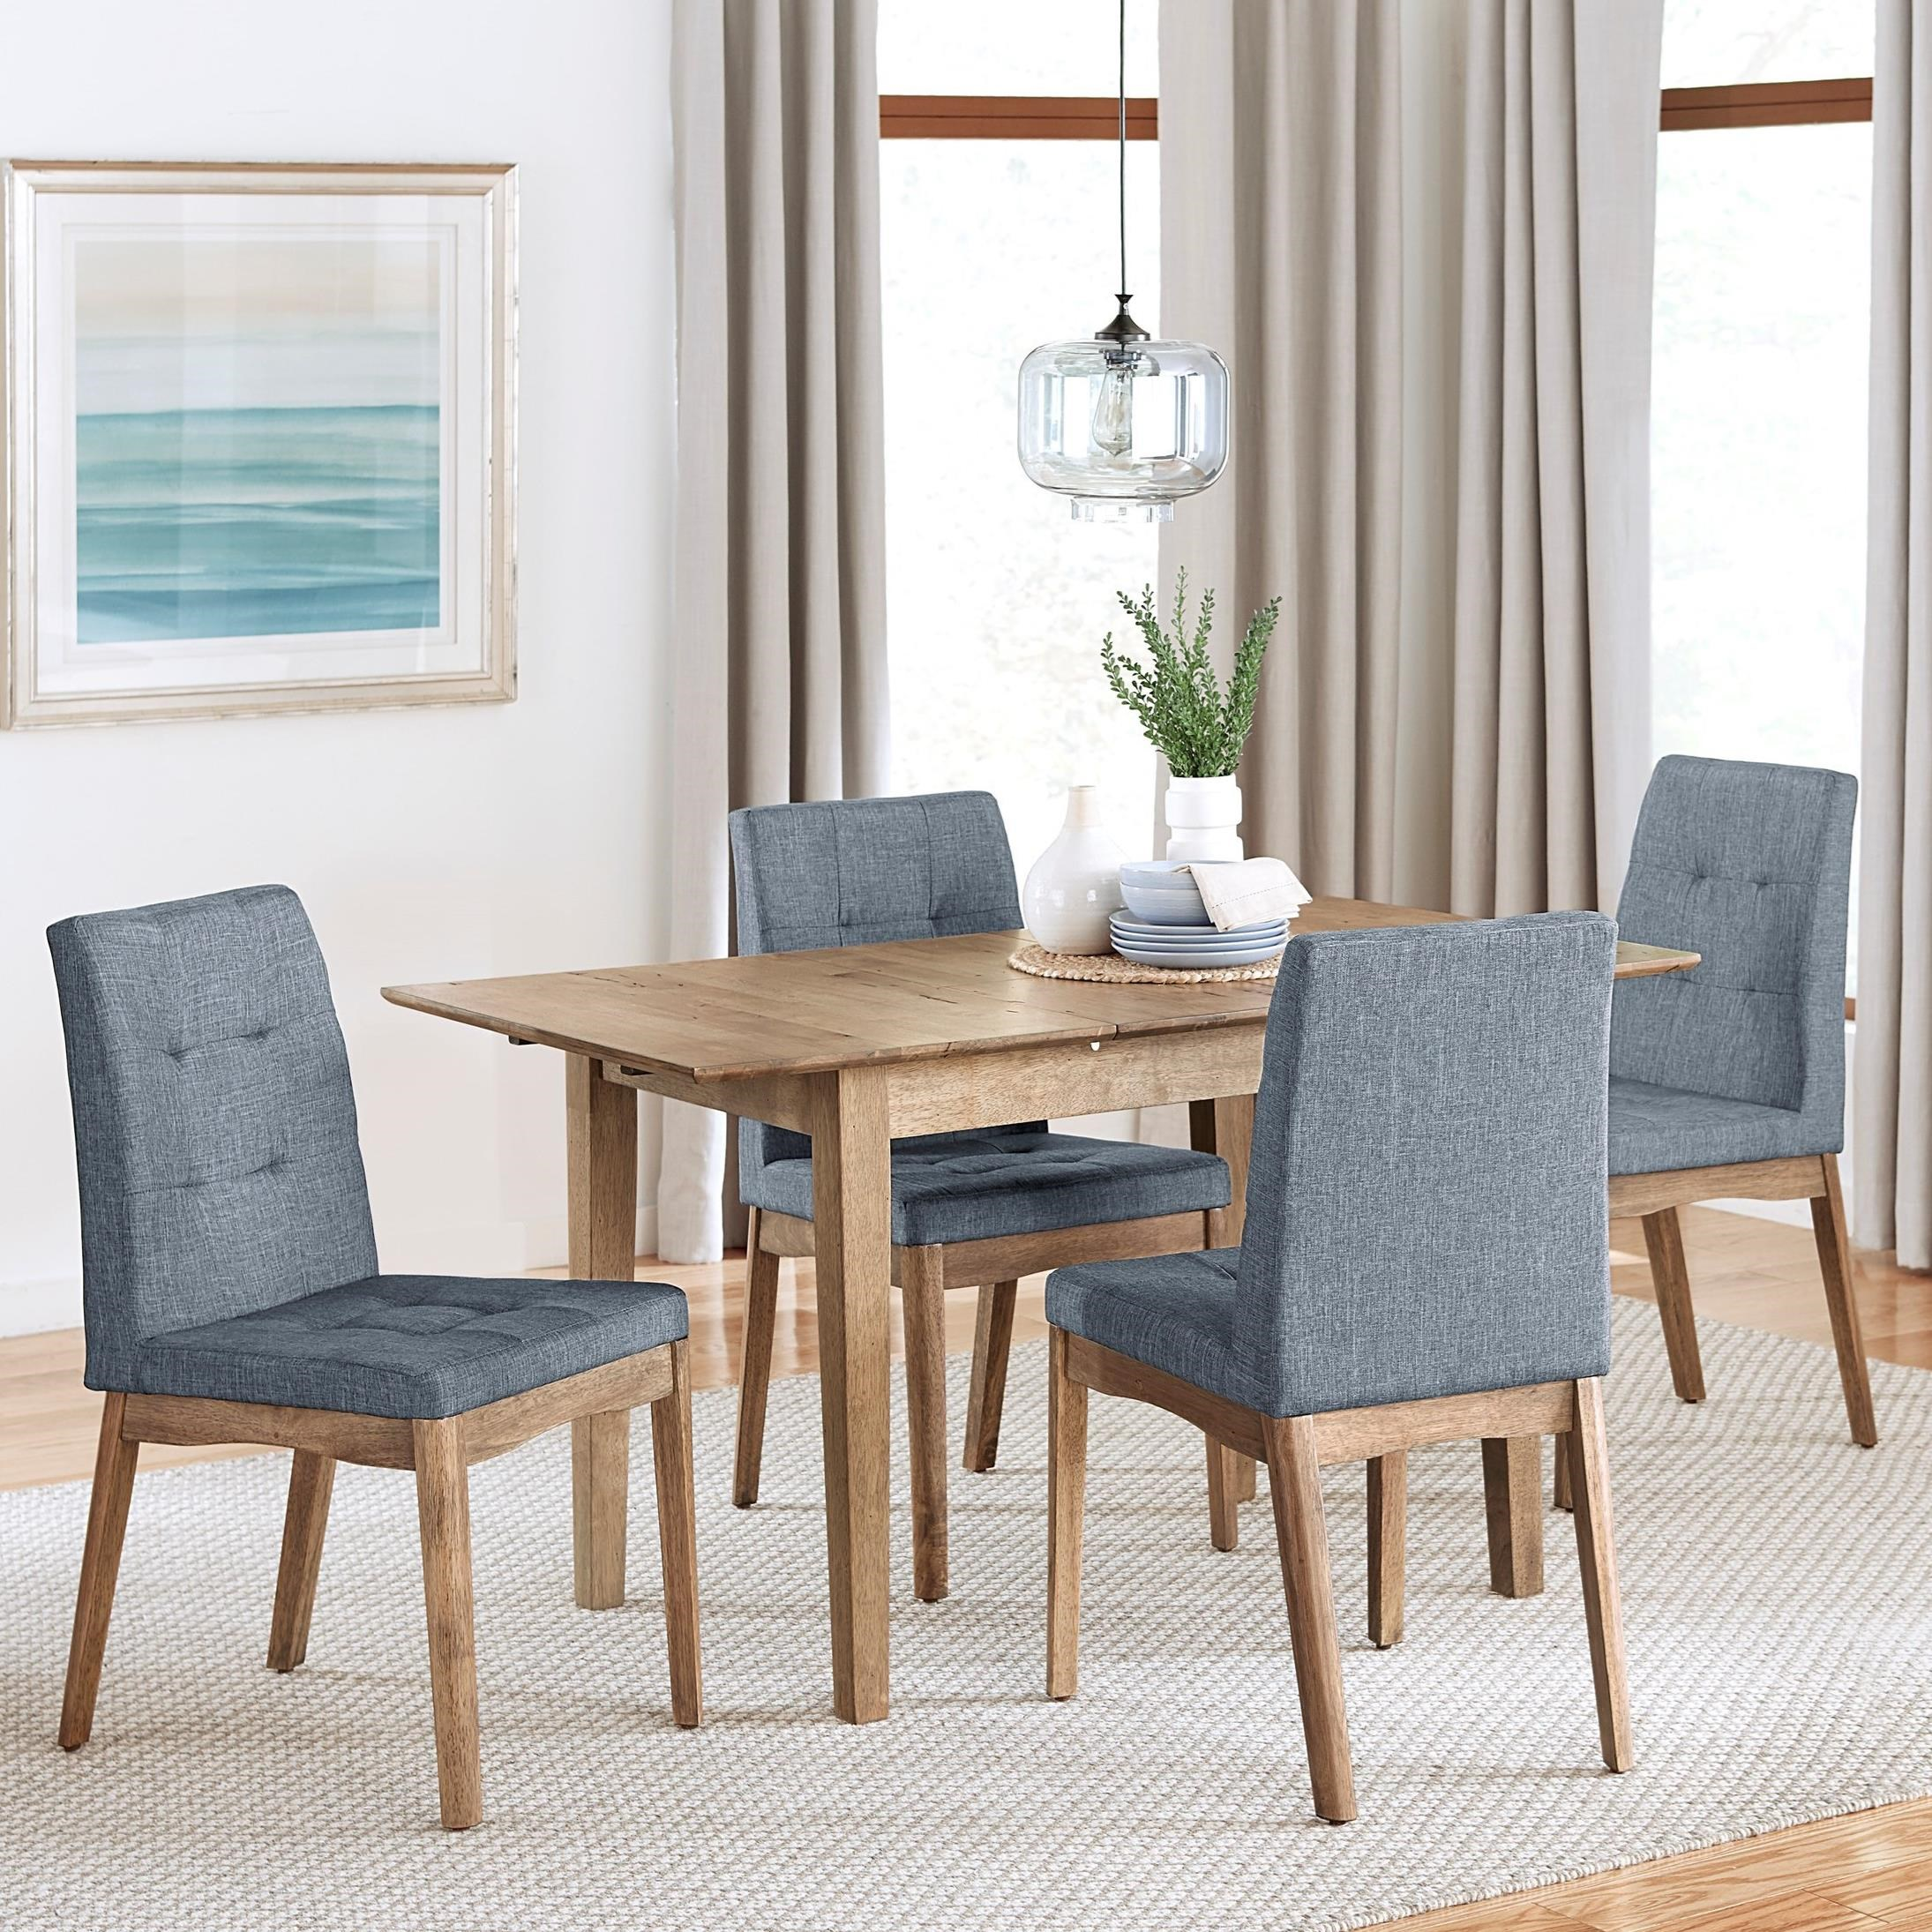 5-Piece Butterfly Dining Table Set